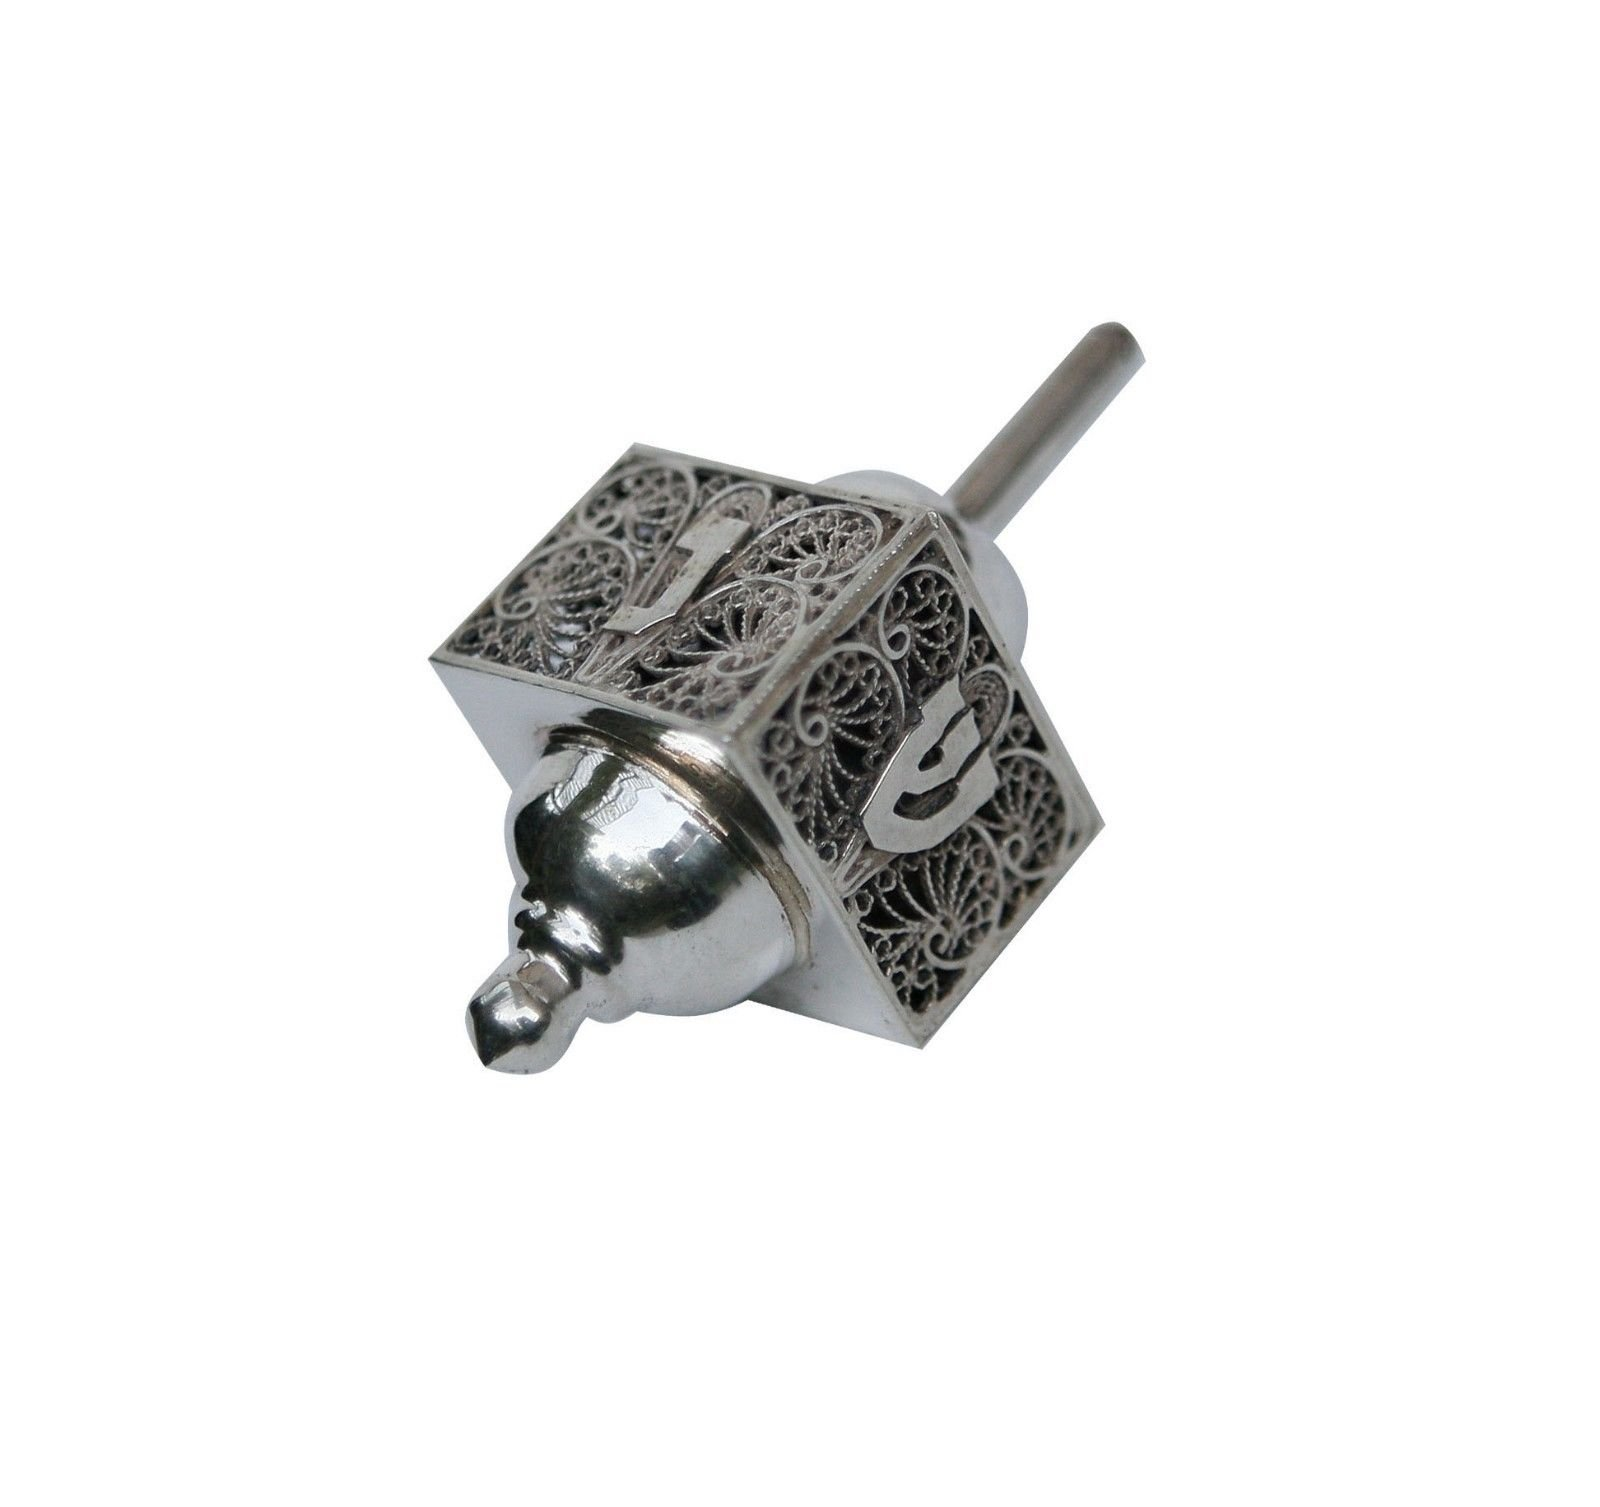 Hanukkah Chanukkah Dreidel Collector's Beautiful Unique 925 Sterling Silver, Israel Hand Made, Weight: 25 Grams , 3.0'' x 1.25''. Spinning Top